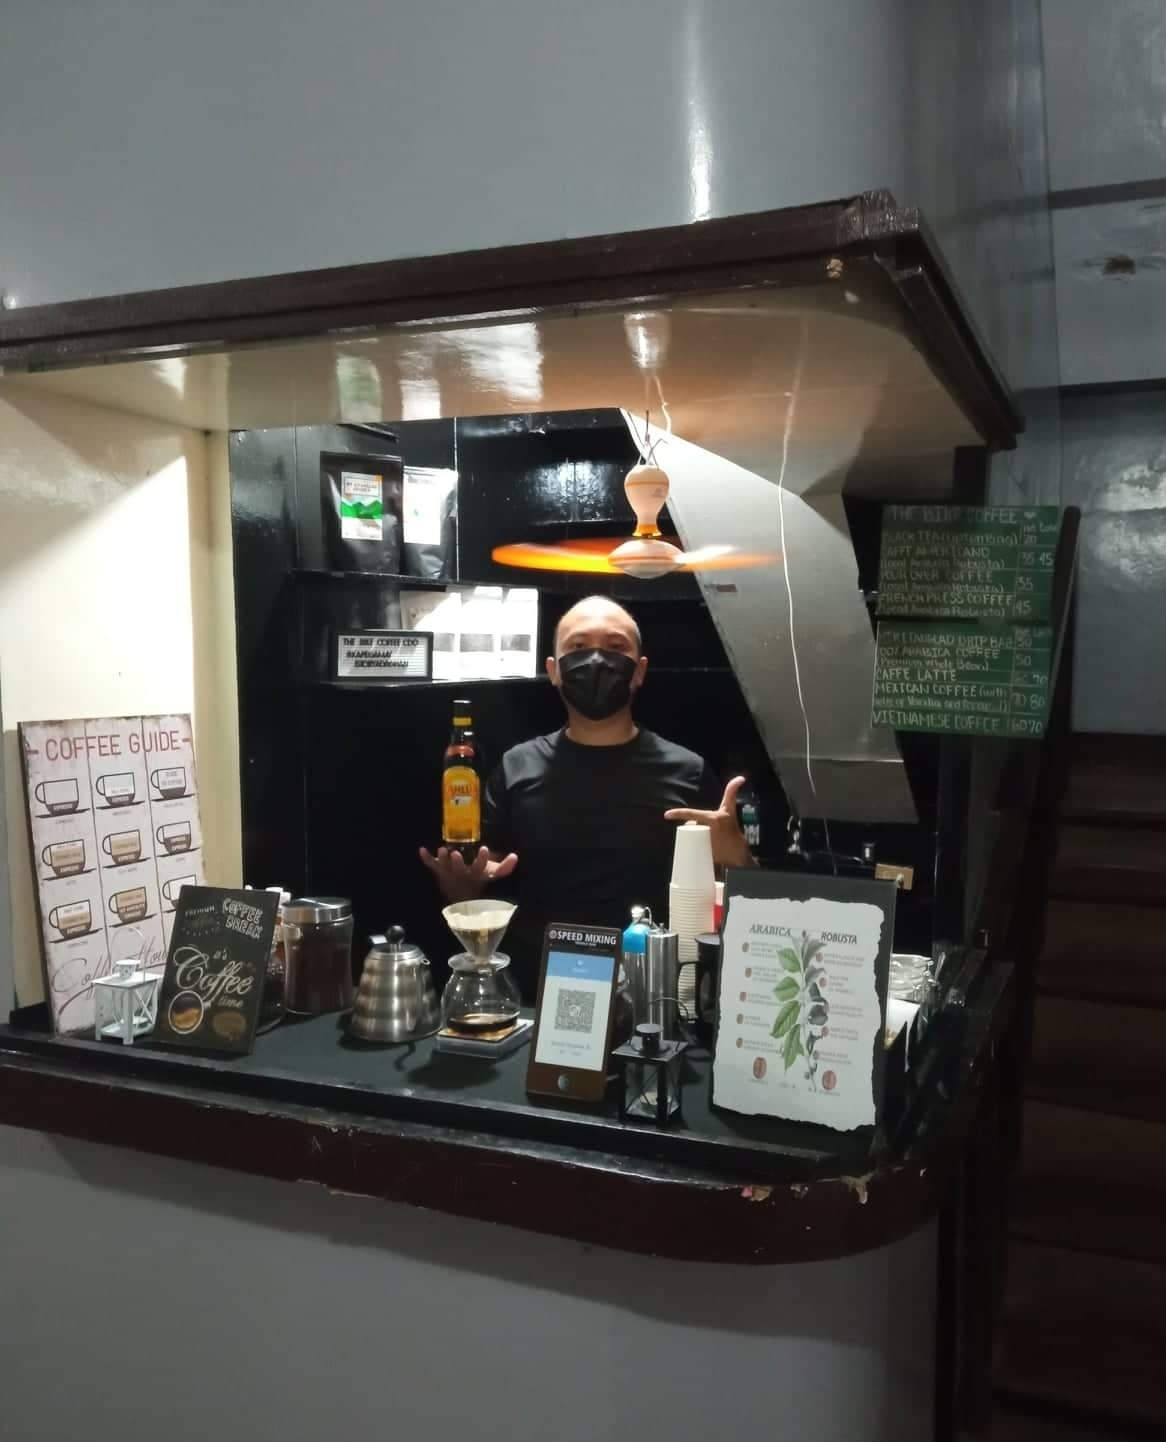 The Bike Coffee CDO's first physical stall